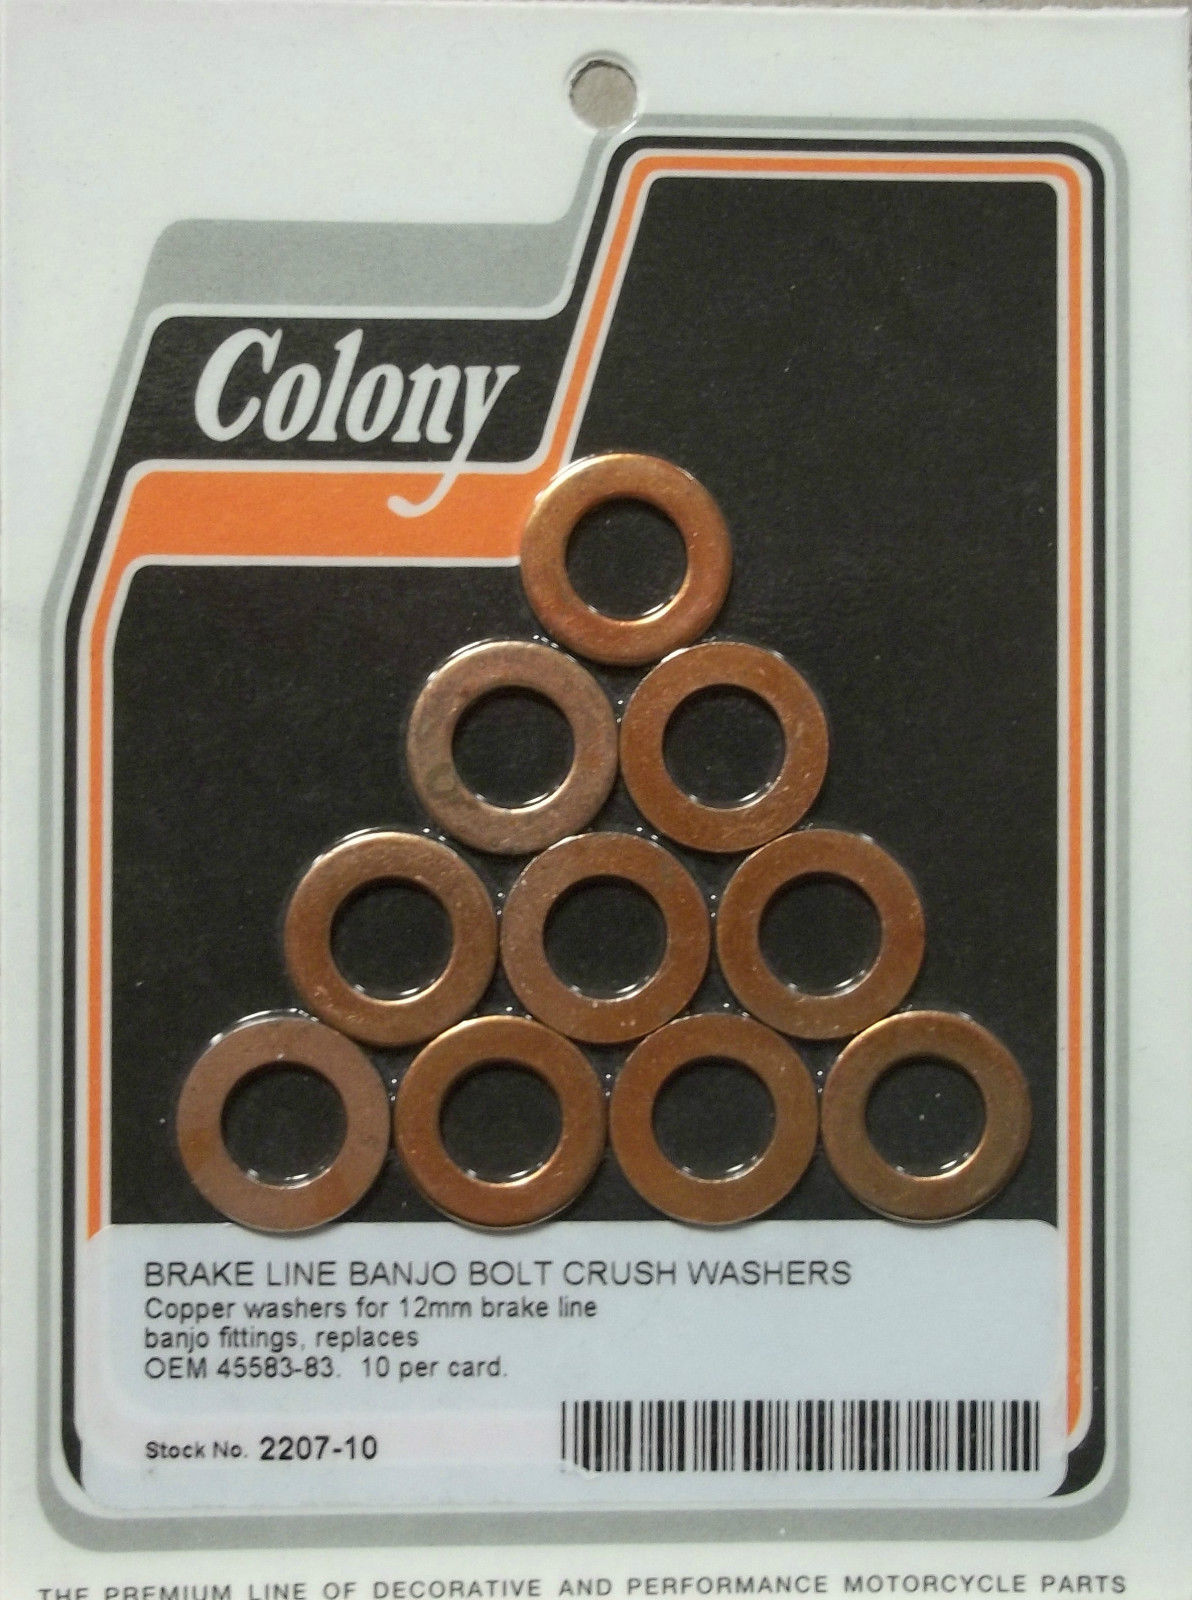 BRAKE LINE BANJO BOLT CRUSH WASHERS